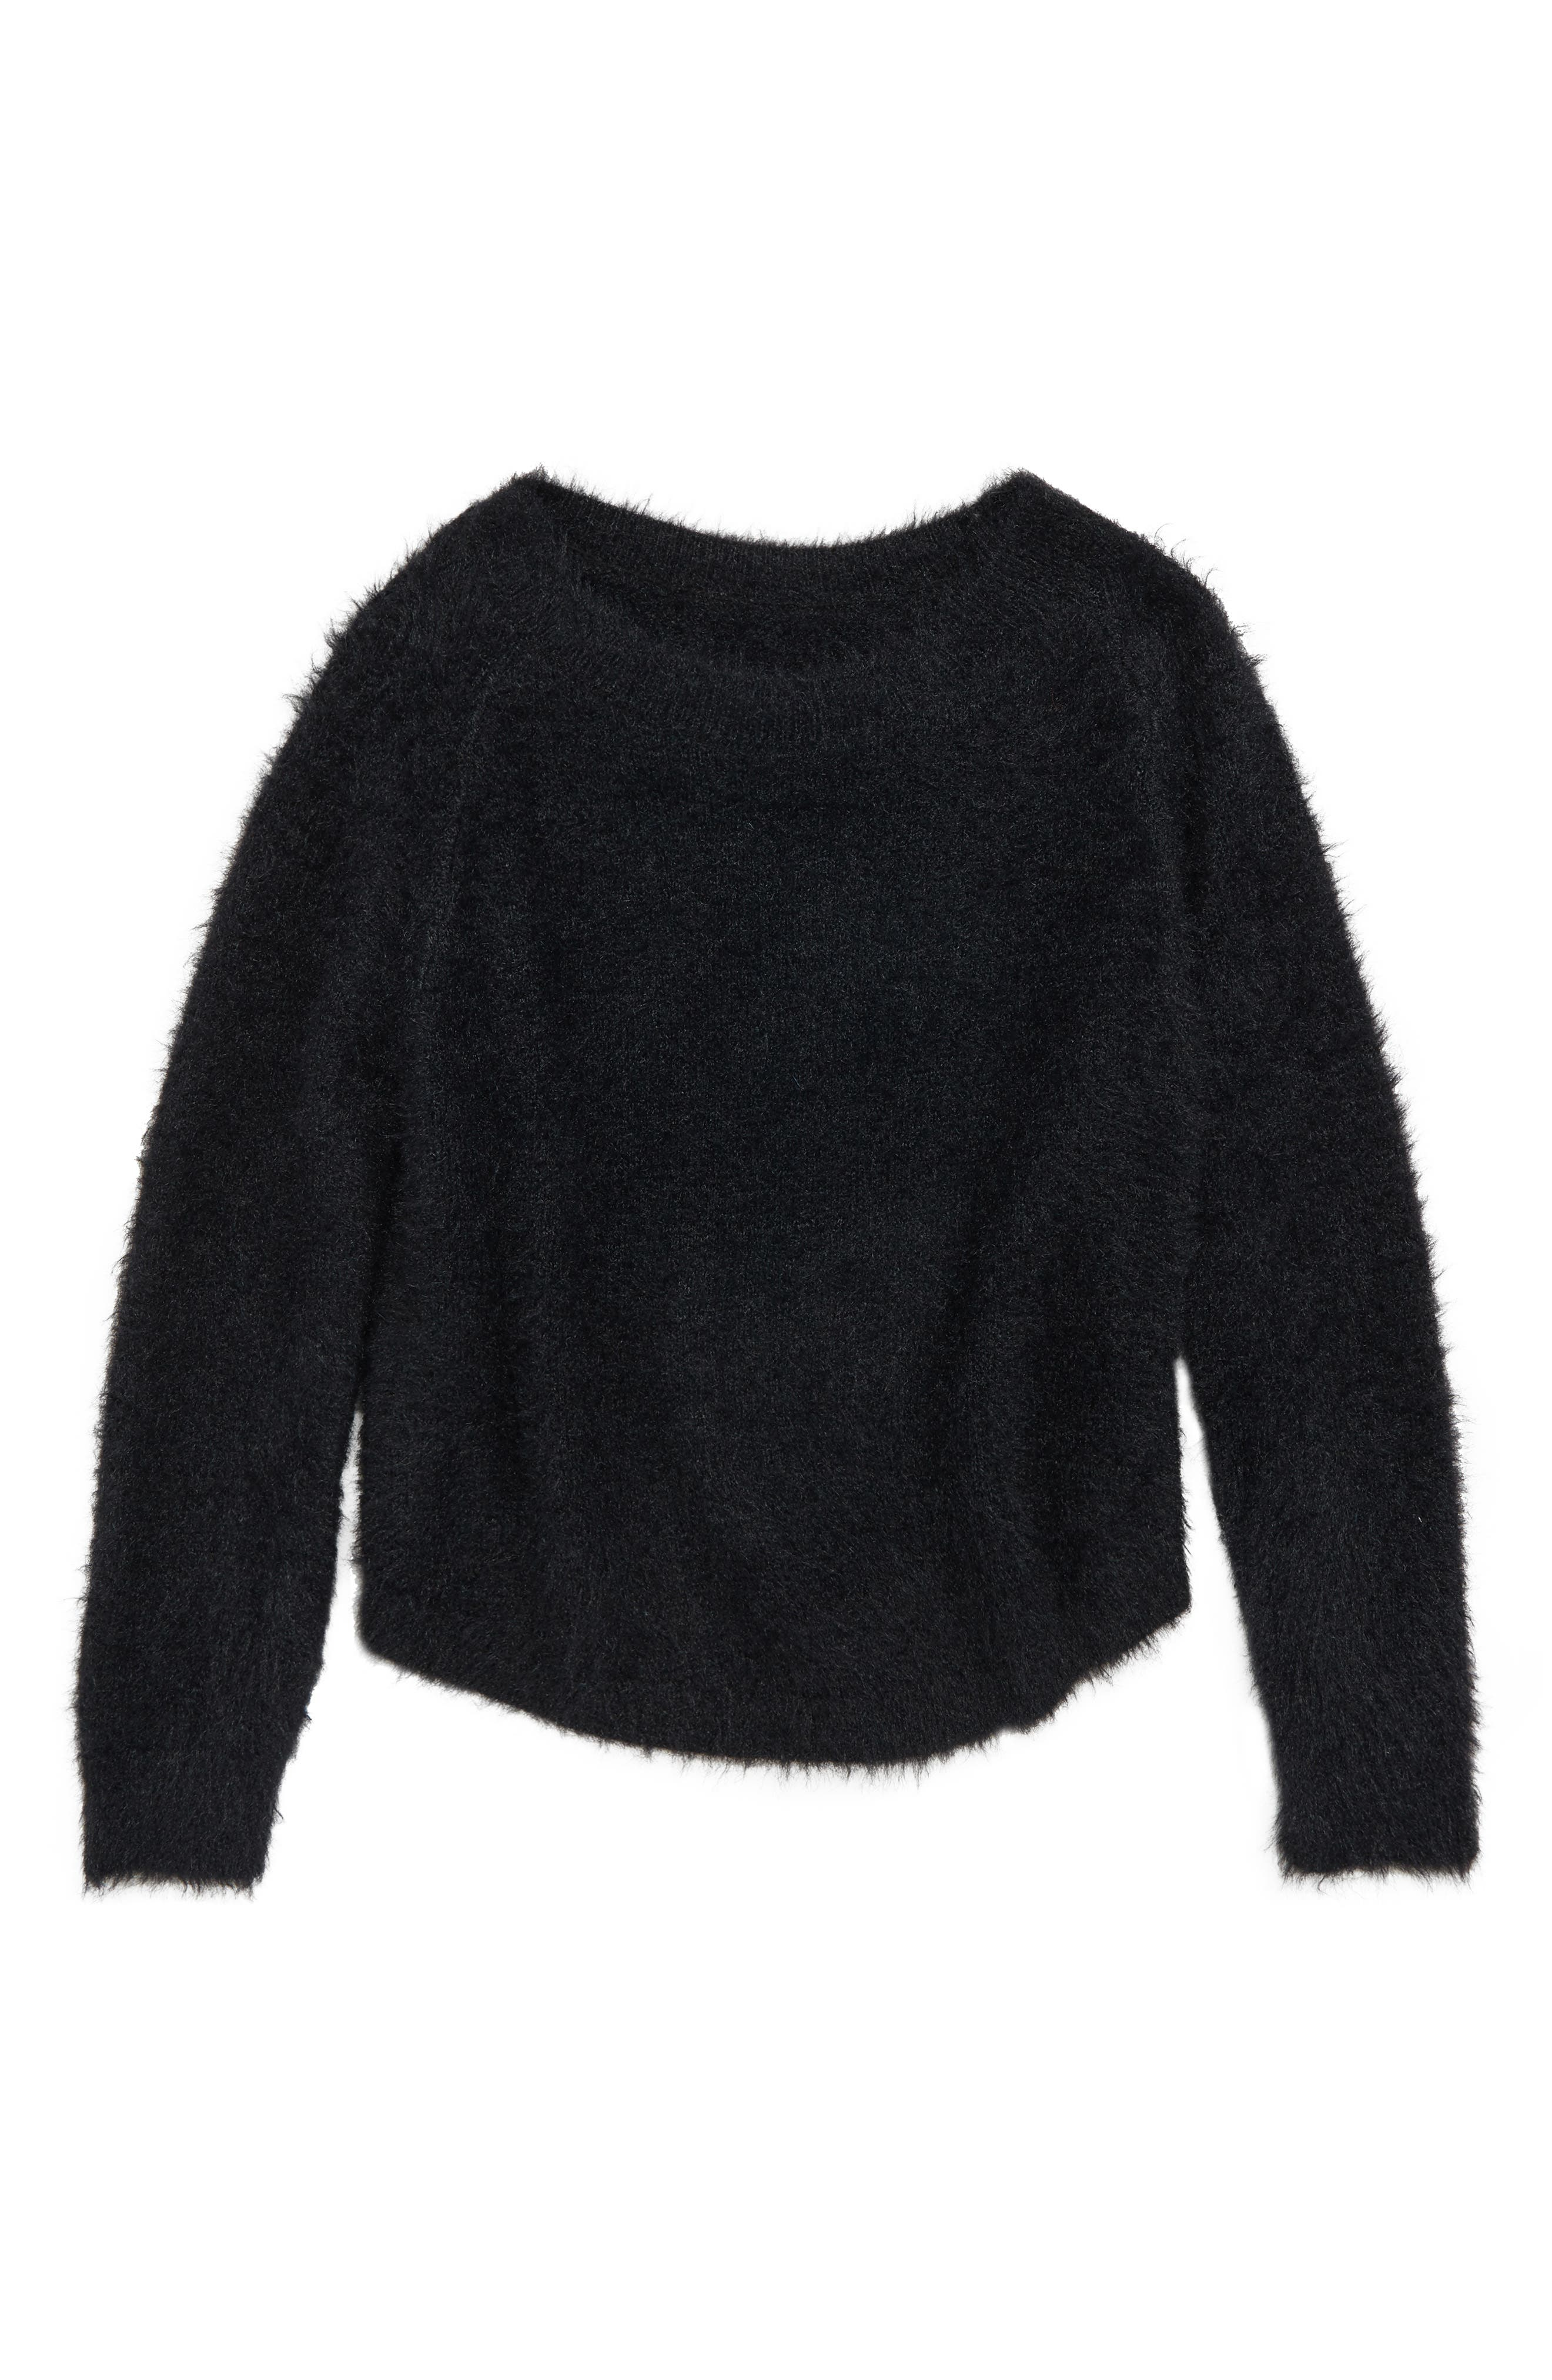 Out Of This World Sweater,                             Main thumbnail 1, color,                             001